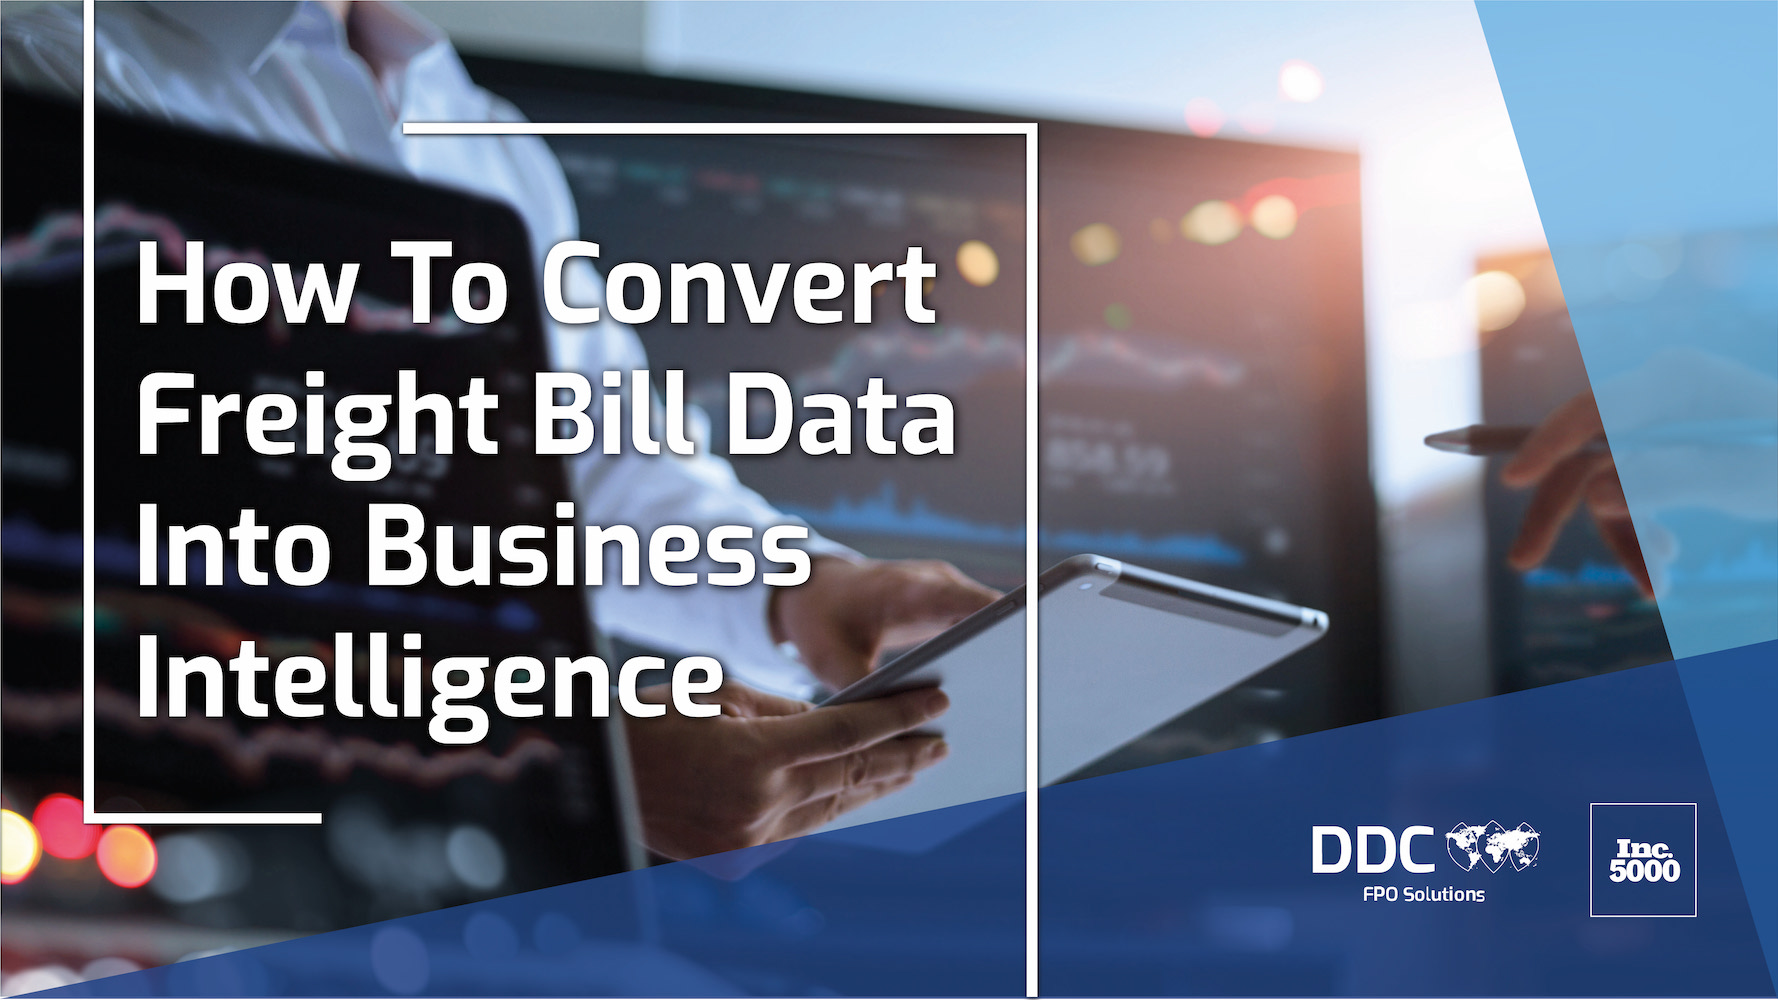 How To Convert Freight Bill Data Into Business Intelligence